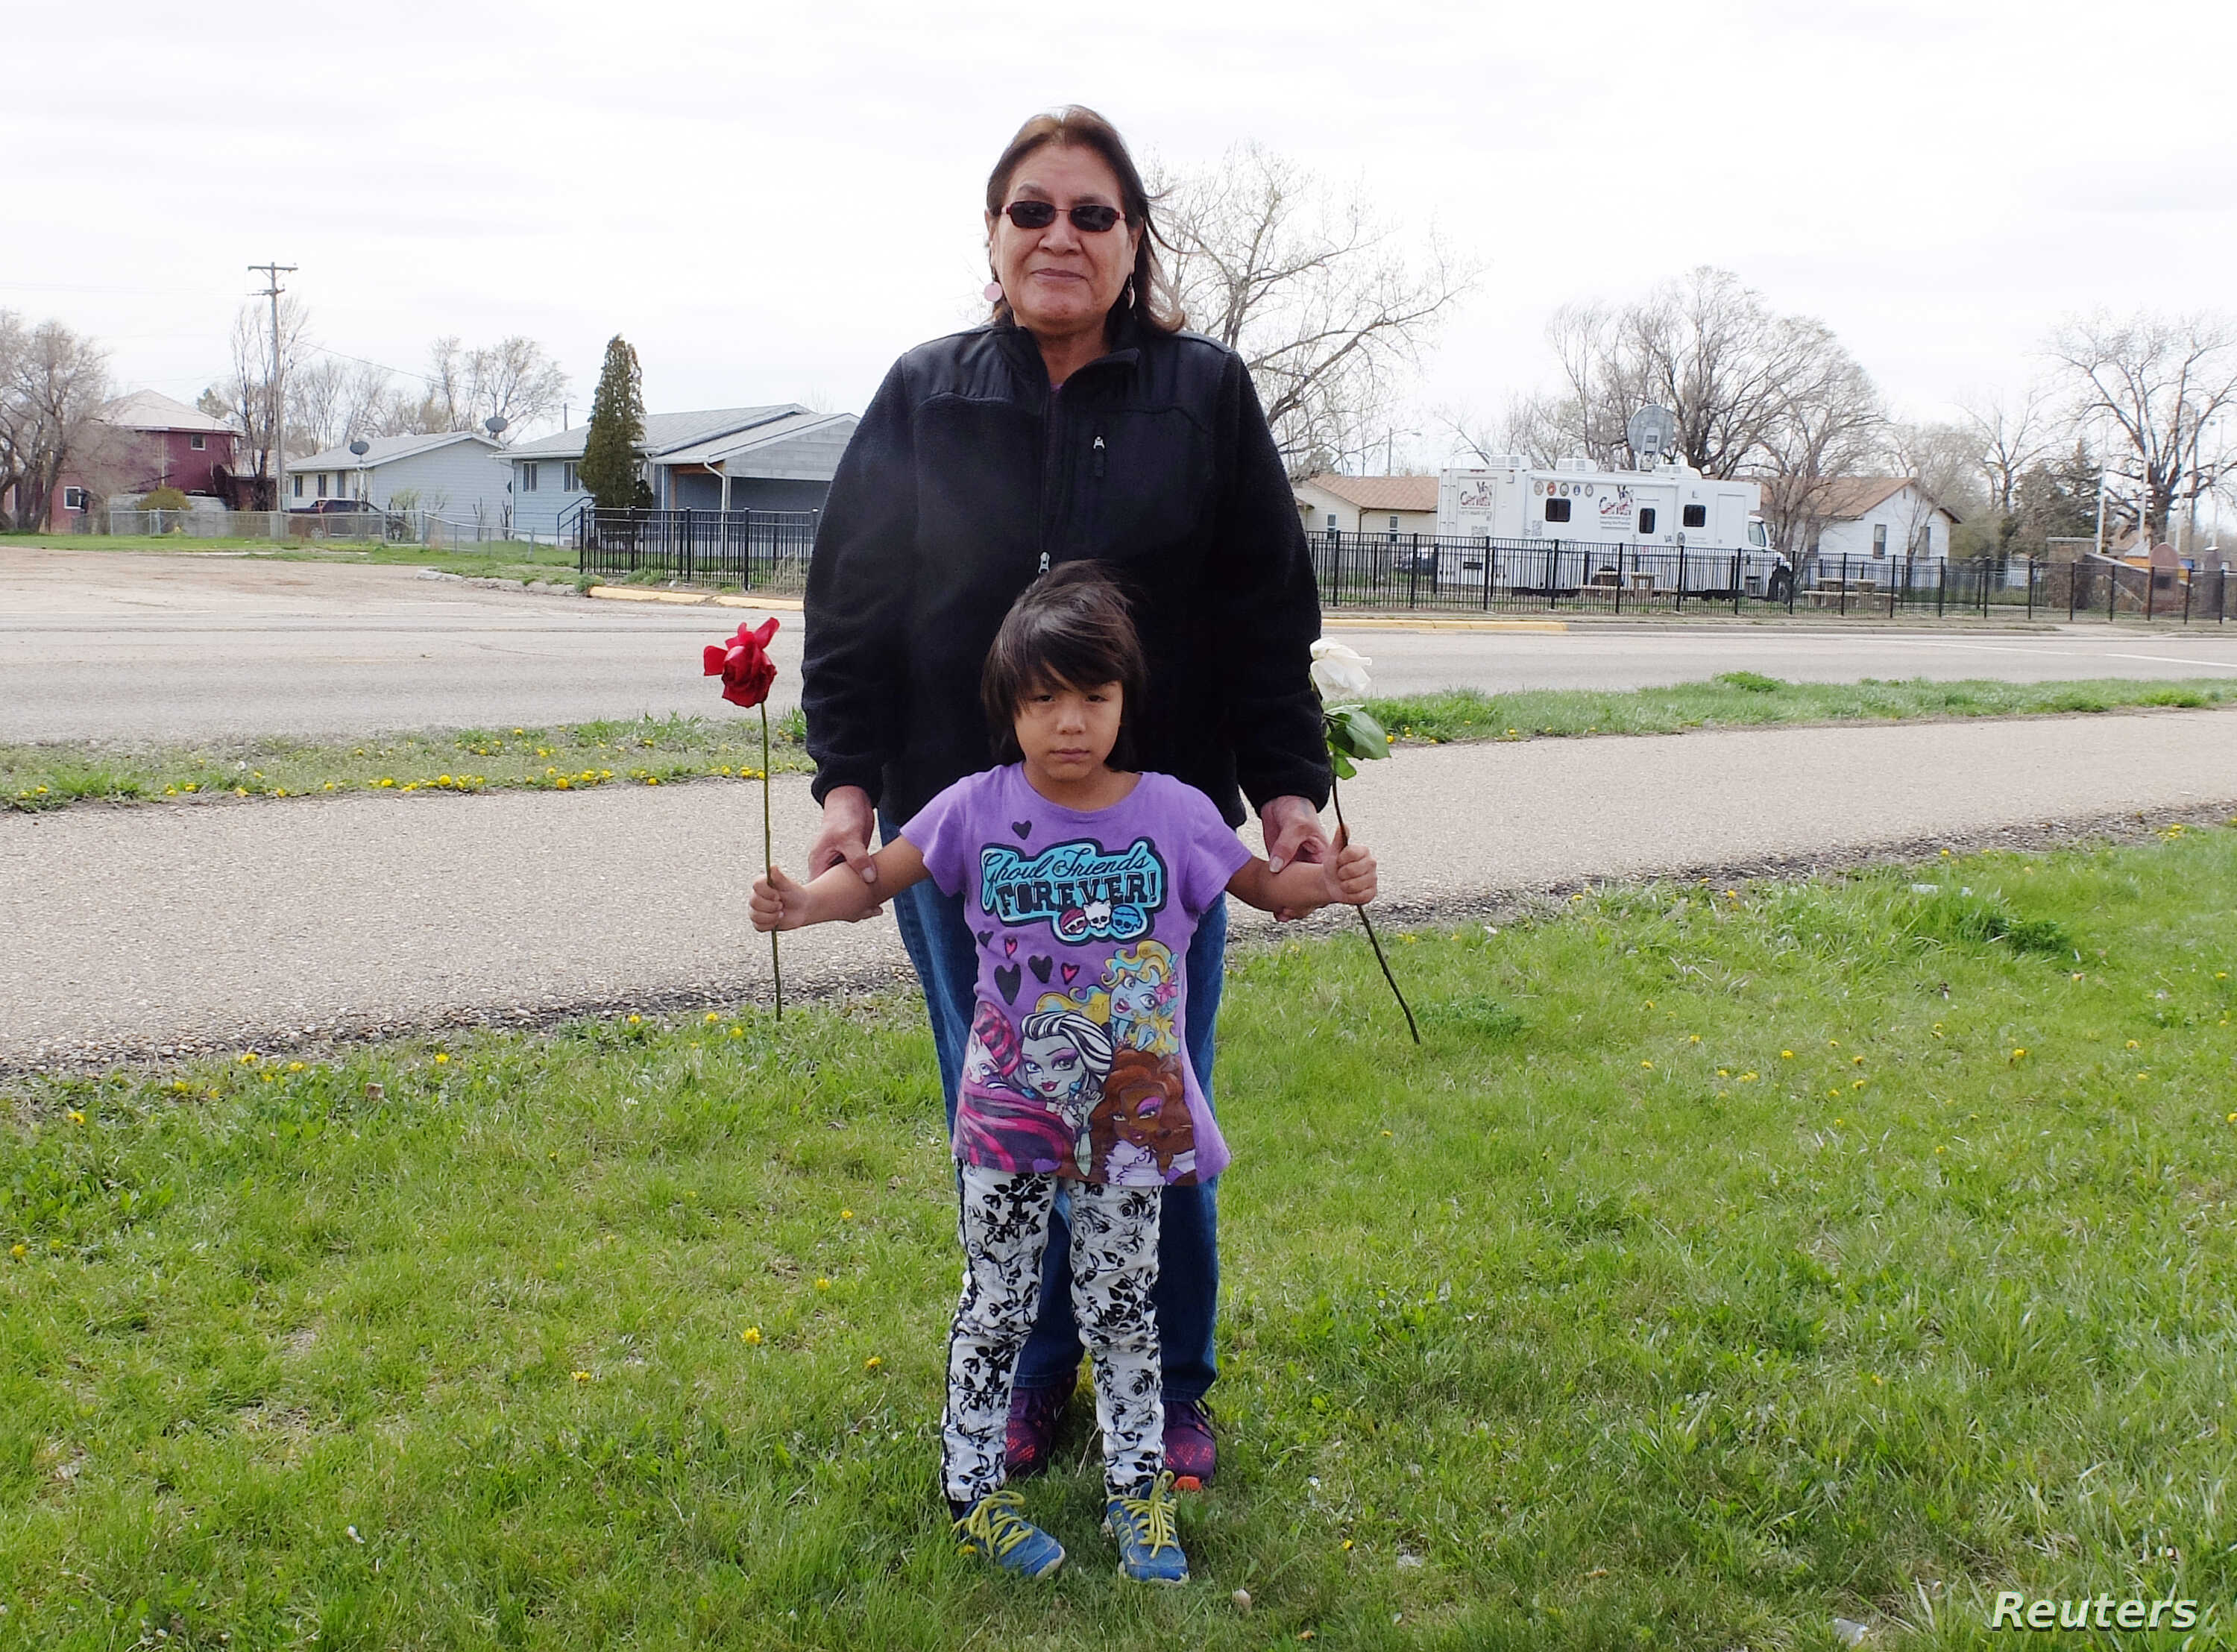 Fueled by Drugs, Sex Trafficking Reaches 'Crisis' on Native